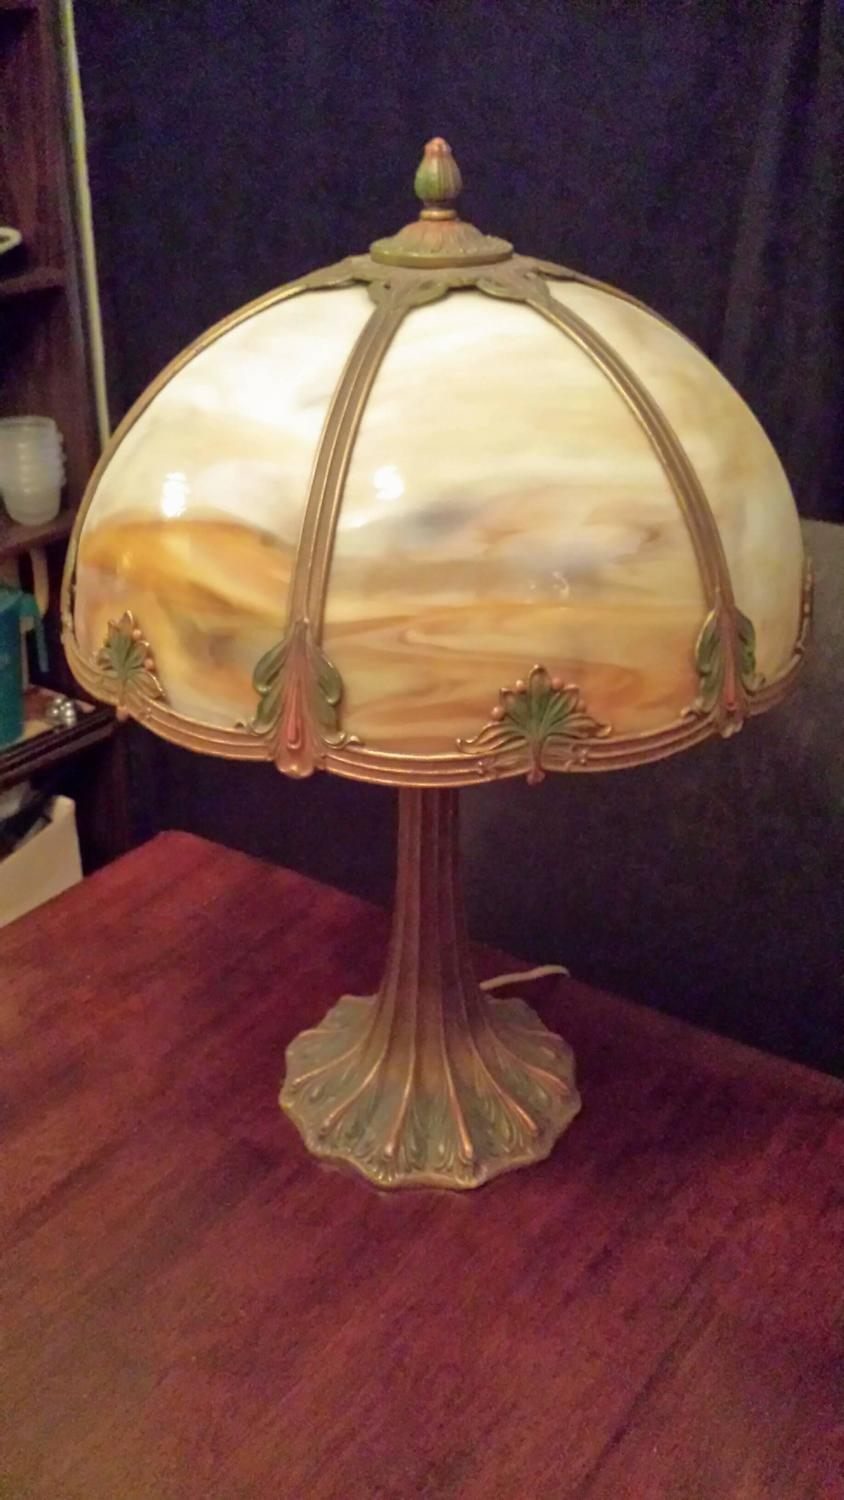 slag glass table lamp carmel colored glass with a decorated shade and. Black Bedroom Furniture Sets. Home Design Ideas